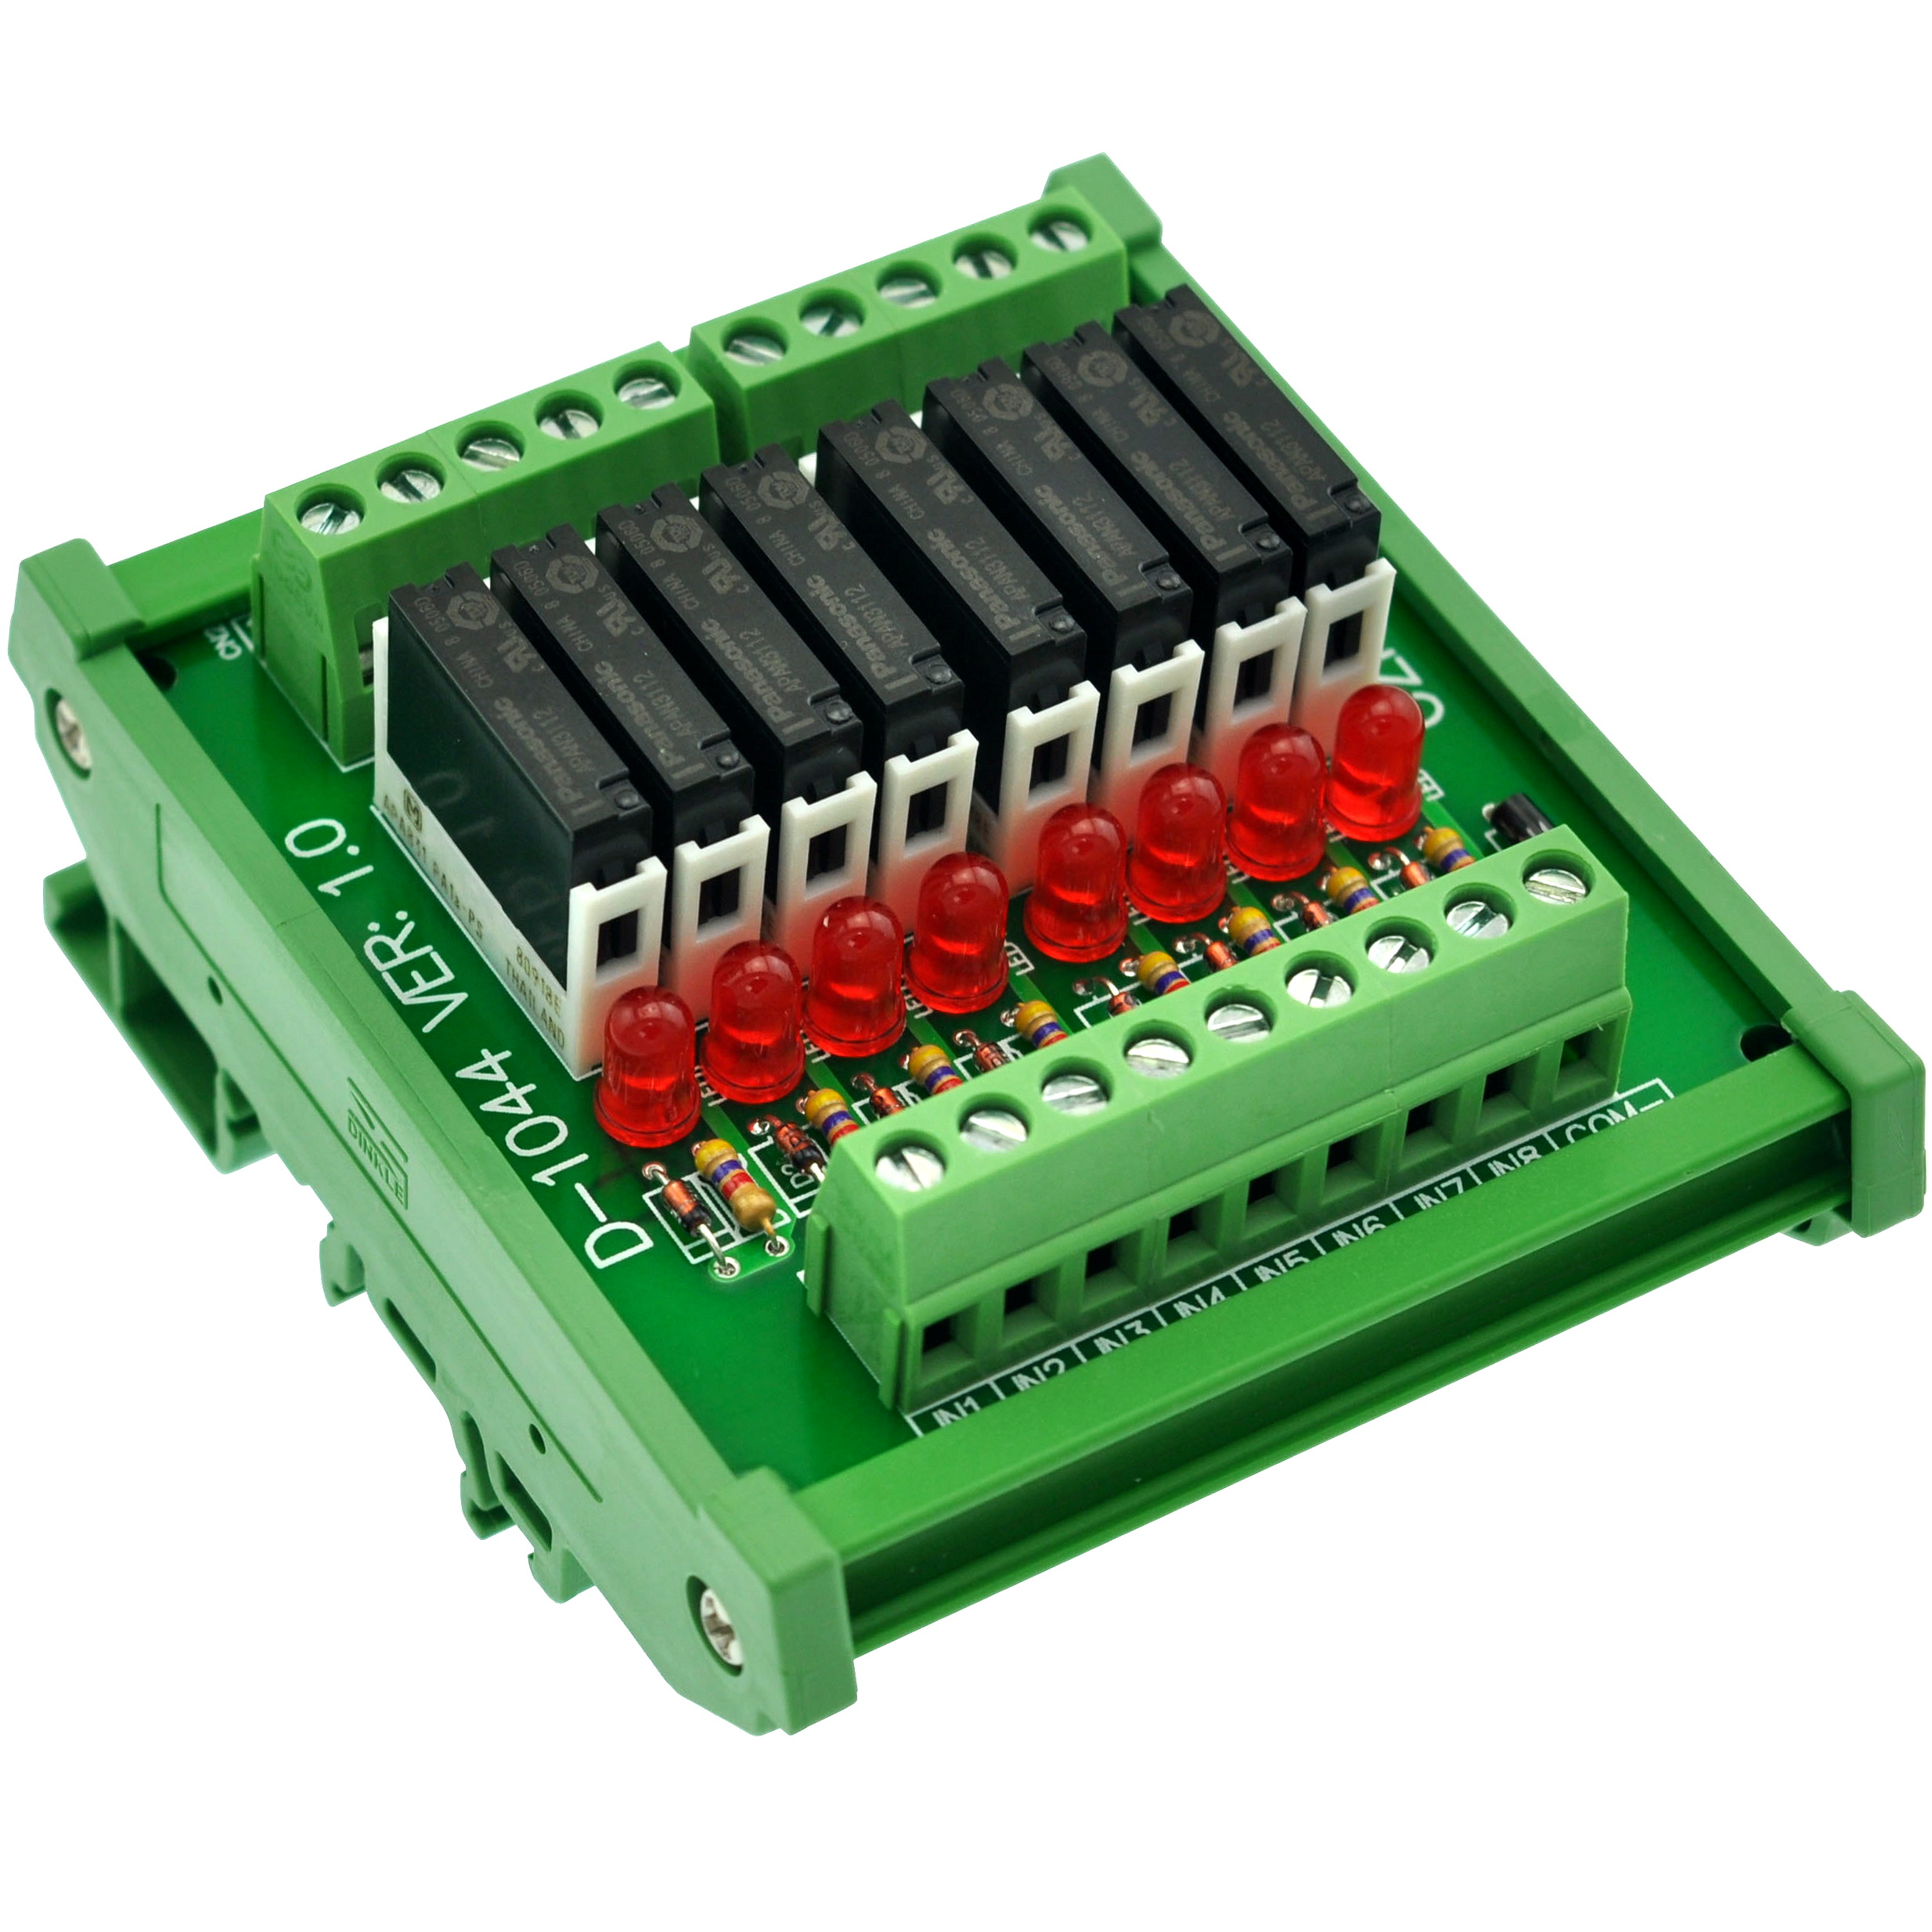 Slim DIN Rail Mount DC12V Source/PNP 8 SPST-NO 5A Power Relay Module, APAN3112Slim DIN Rail Mount DC12V Source/PNP 8 SPST-NO 5A Power Relay Module, APAN3112